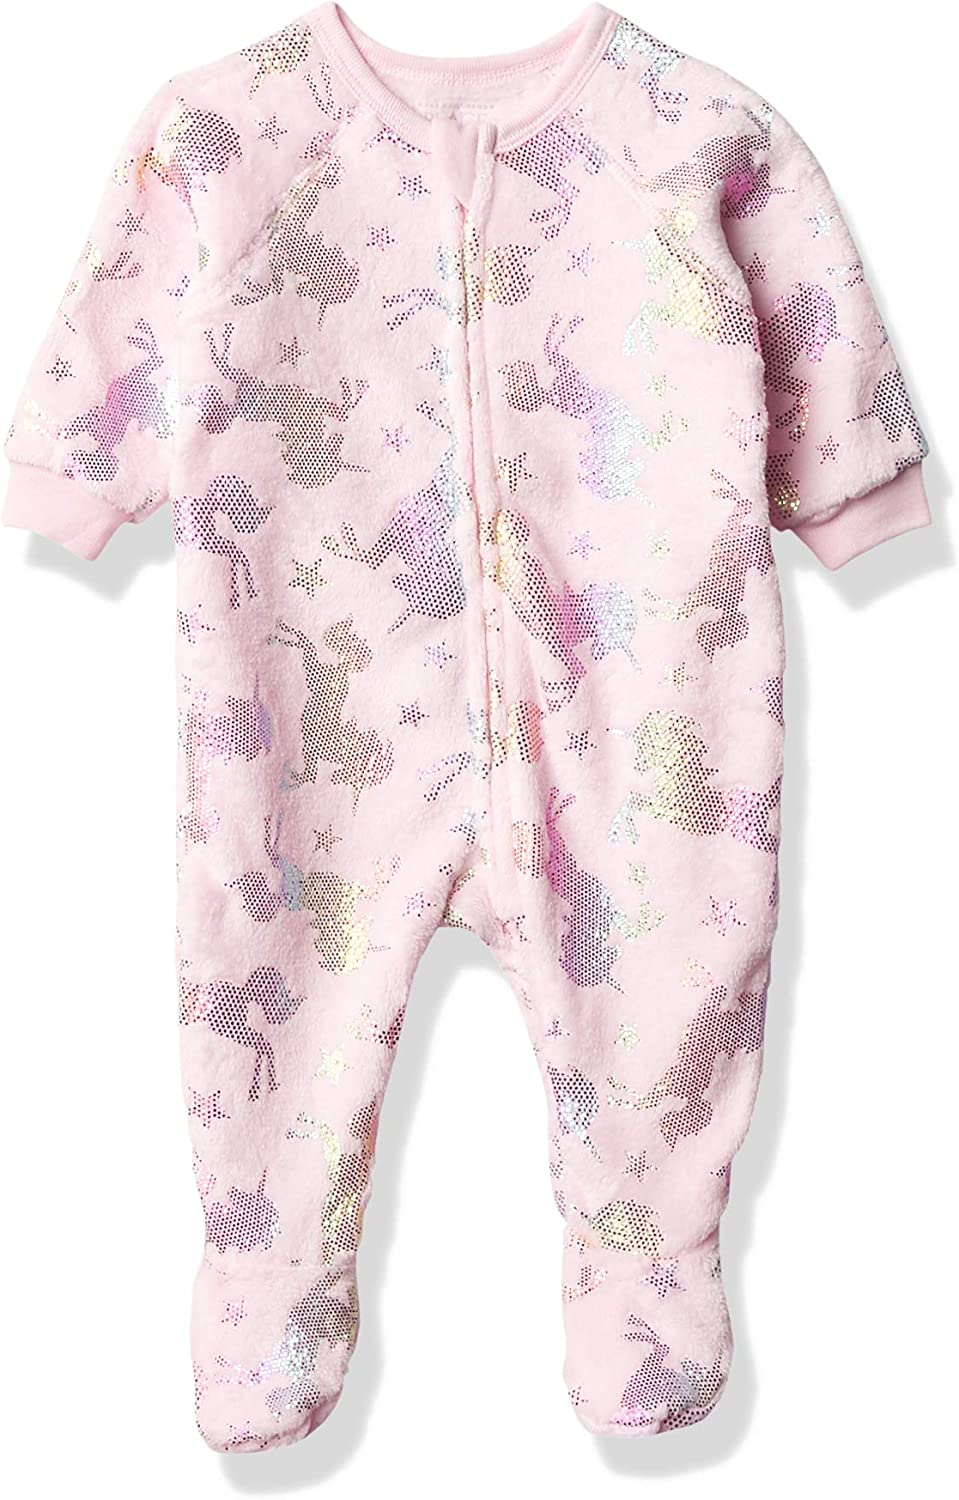 The Children's Place Girls' Baby and Toddler Foil Unicorn Fleece One Piece Pajamas